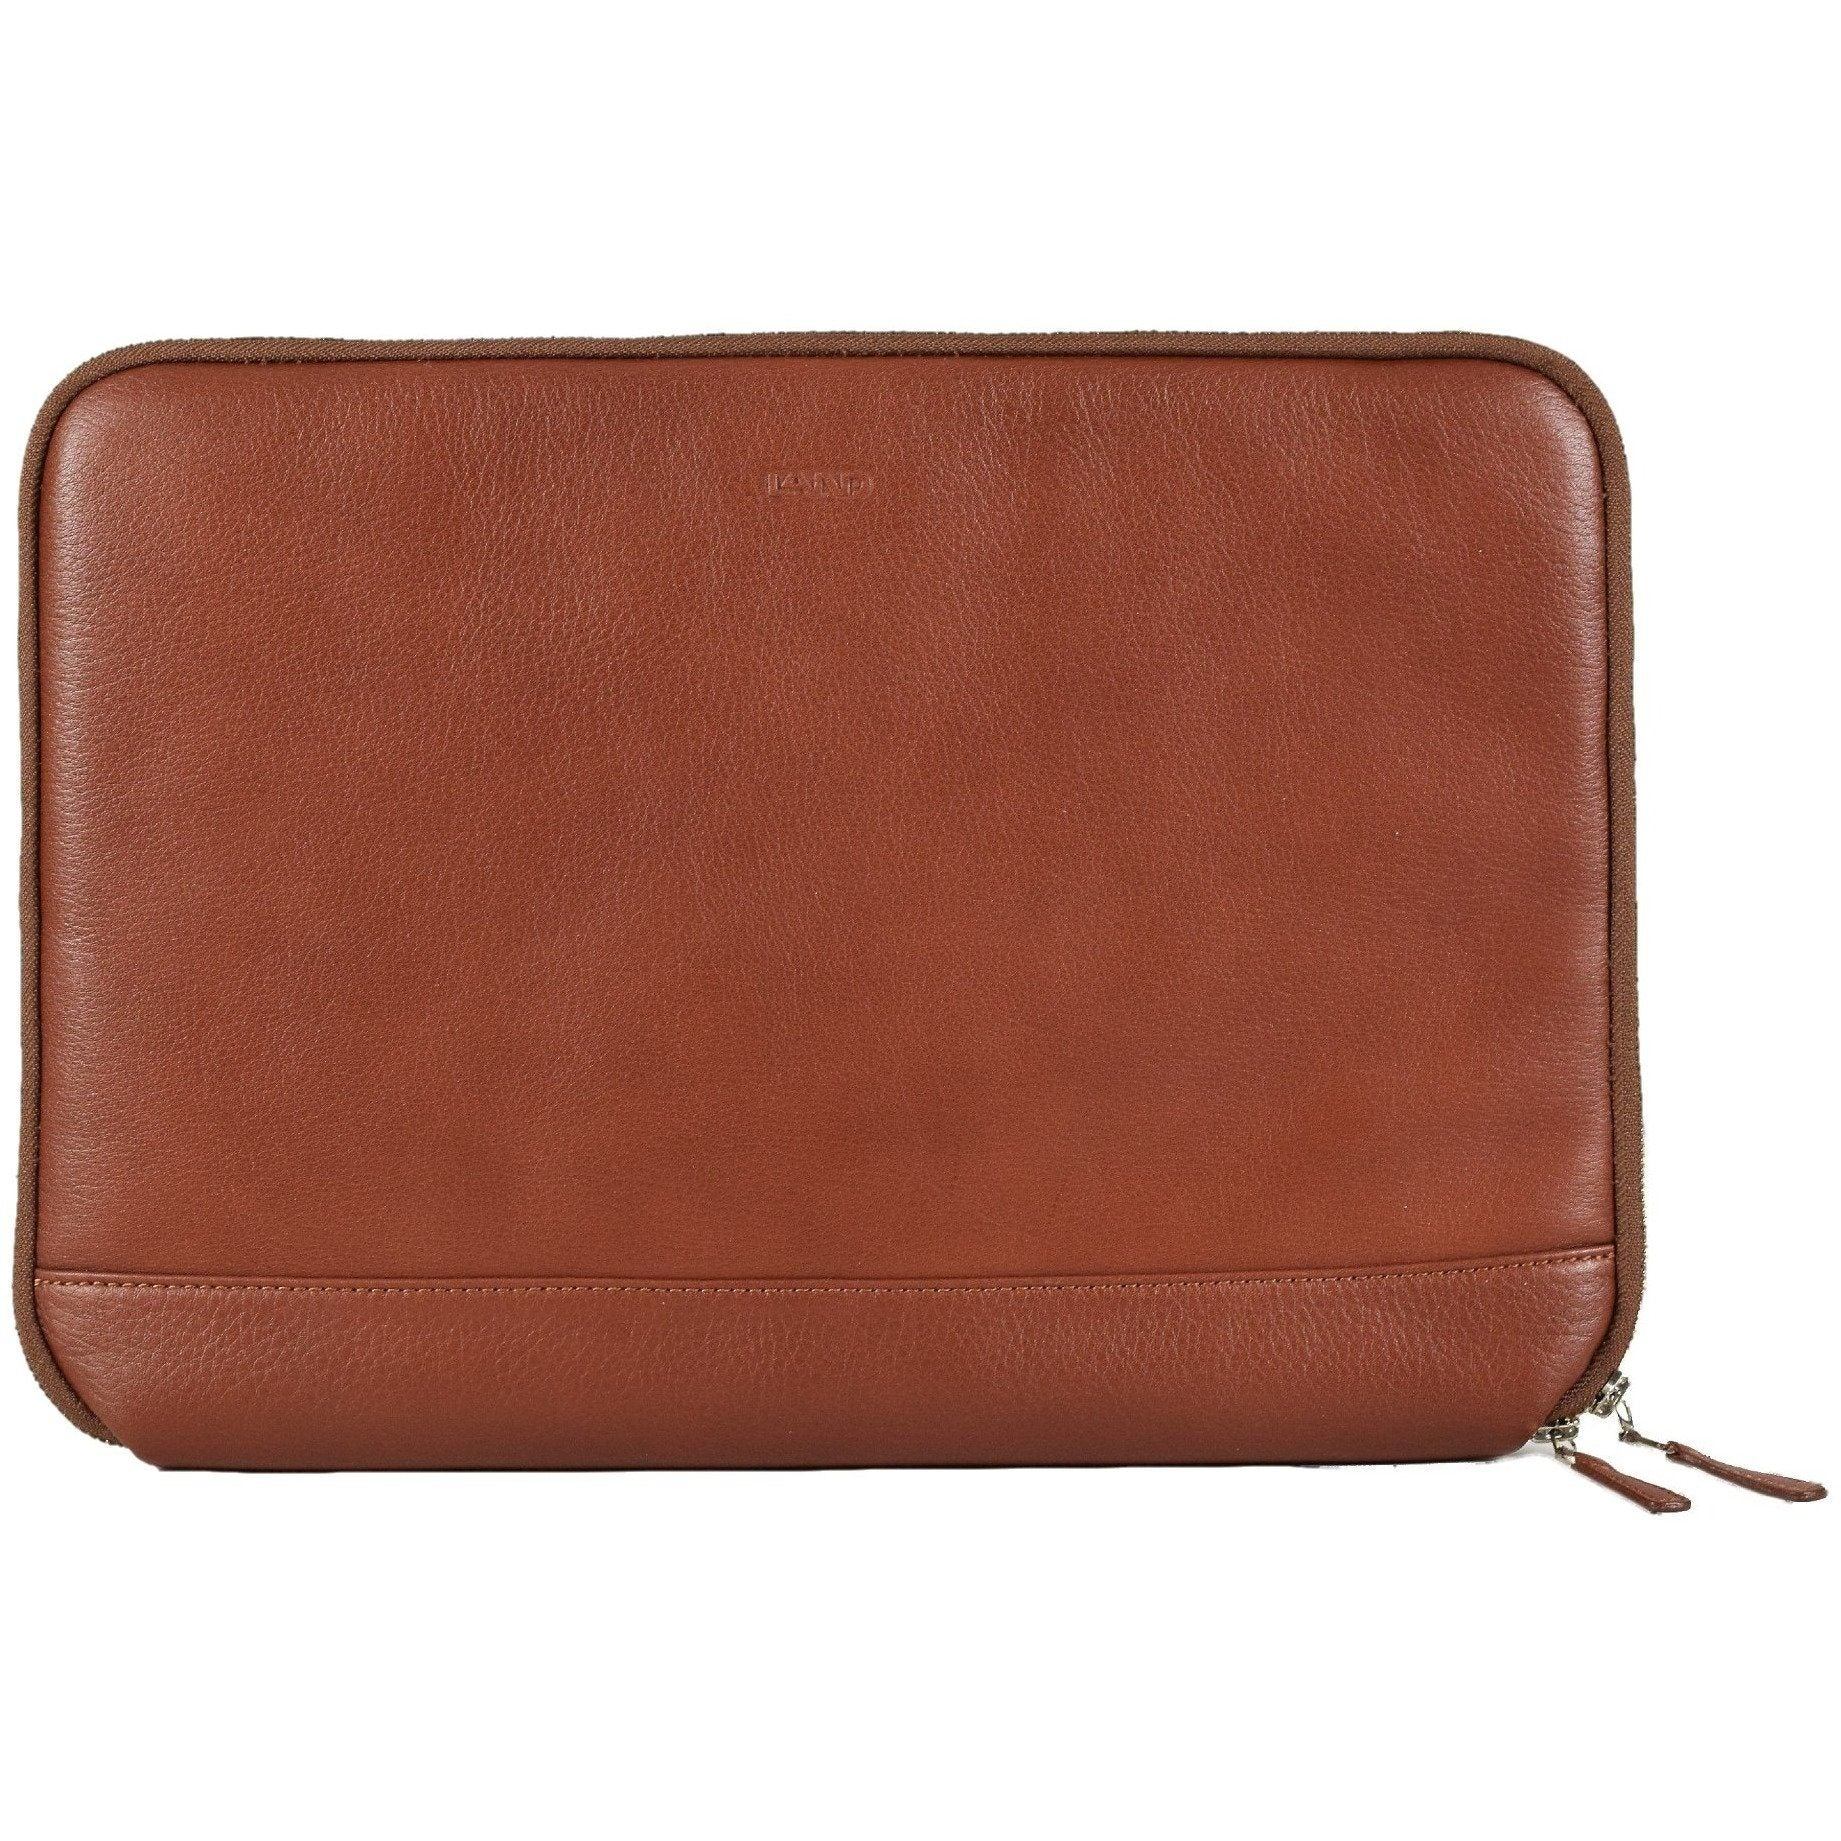 Cosmos Zip Around Laptop Case, Laptop Case | LAND Leather